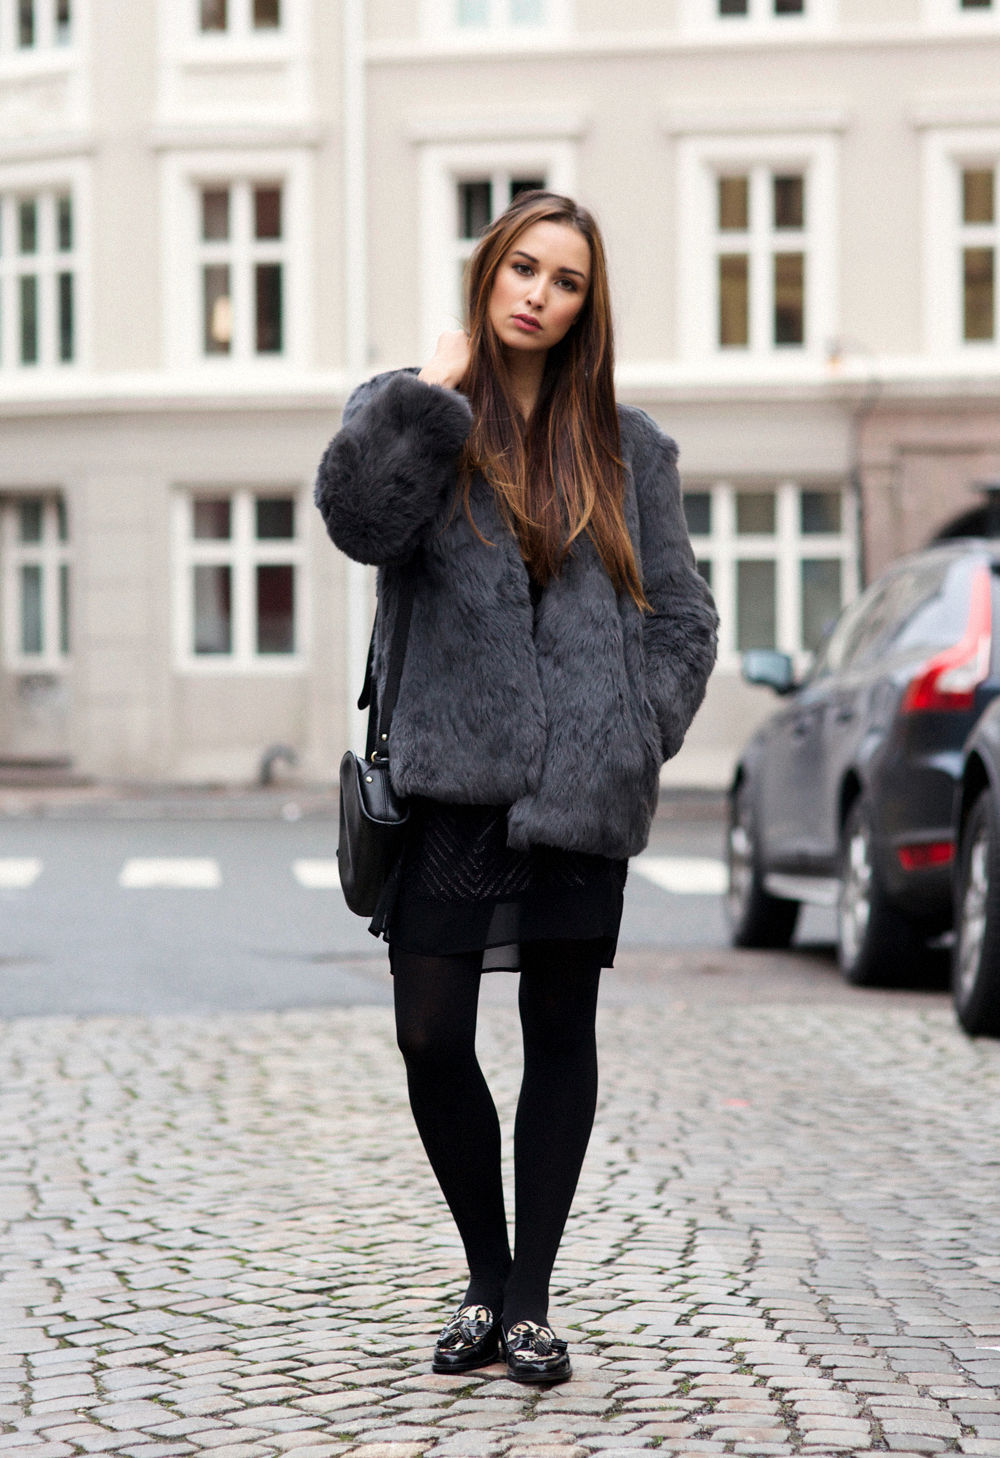 b9f61bb3a5a9 Fluffy Trend, 2014: Marianna Mäkelä is wearing a fluffy faux fur jacket  from Zara.